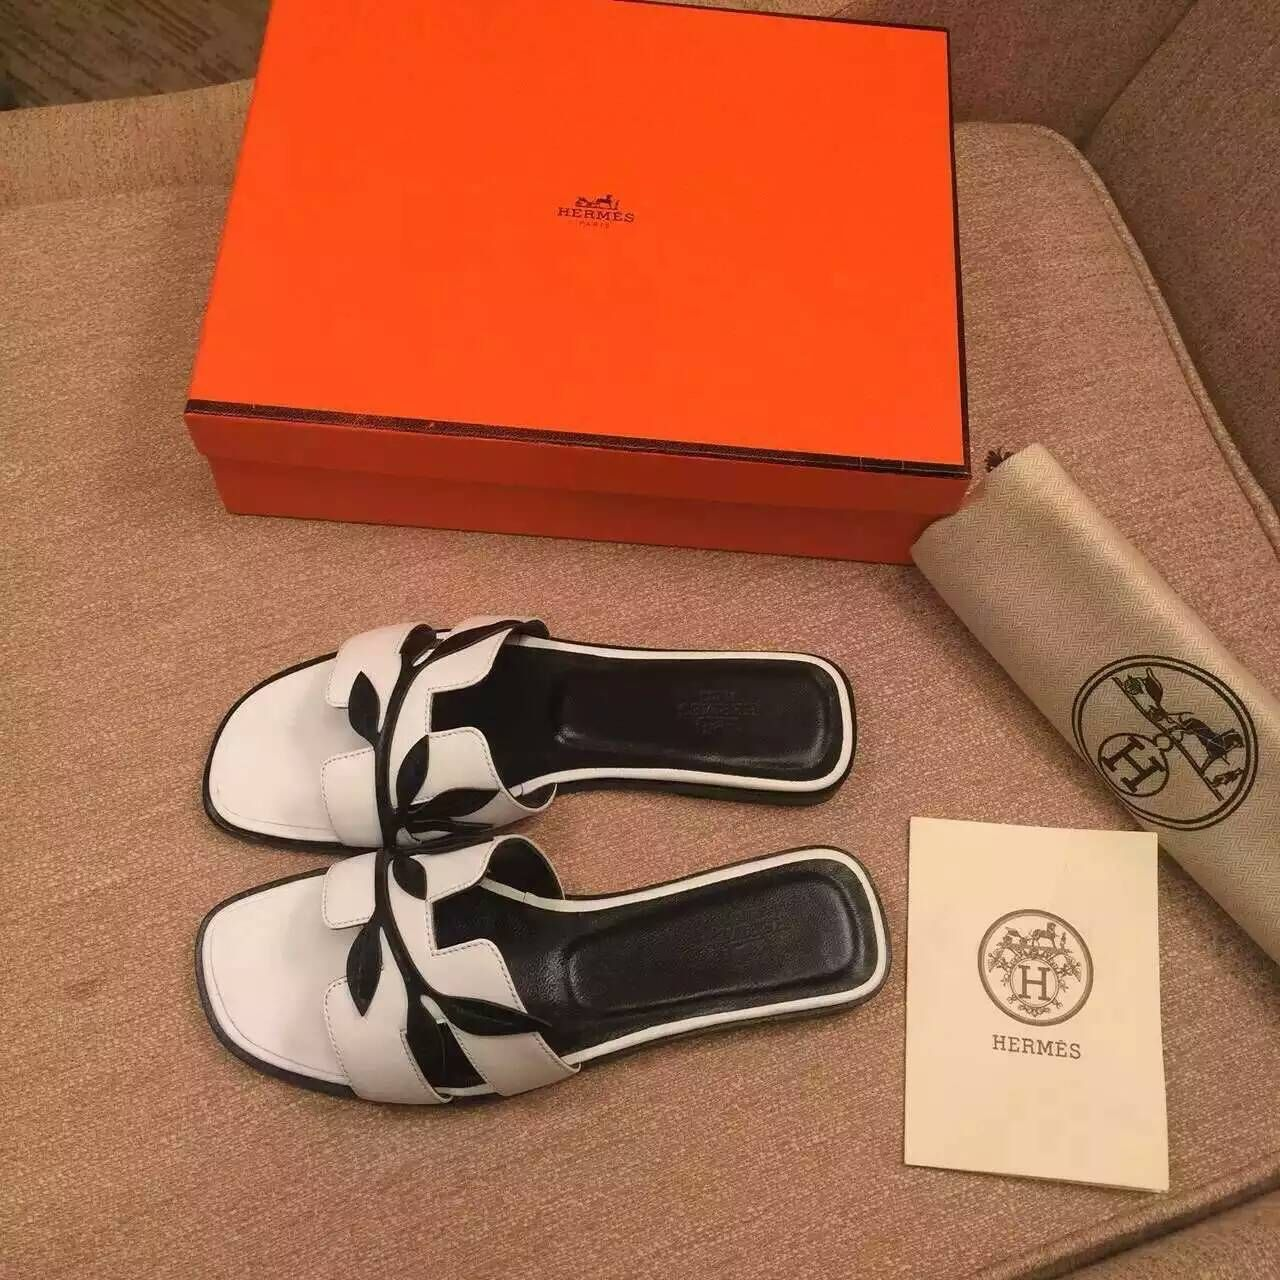 Free Shipping!2016 Hermes Outlet With Free Shipping-Hermes Oasis in white  and black Leather H161019Z-WBL 7e9cd8e9b91af